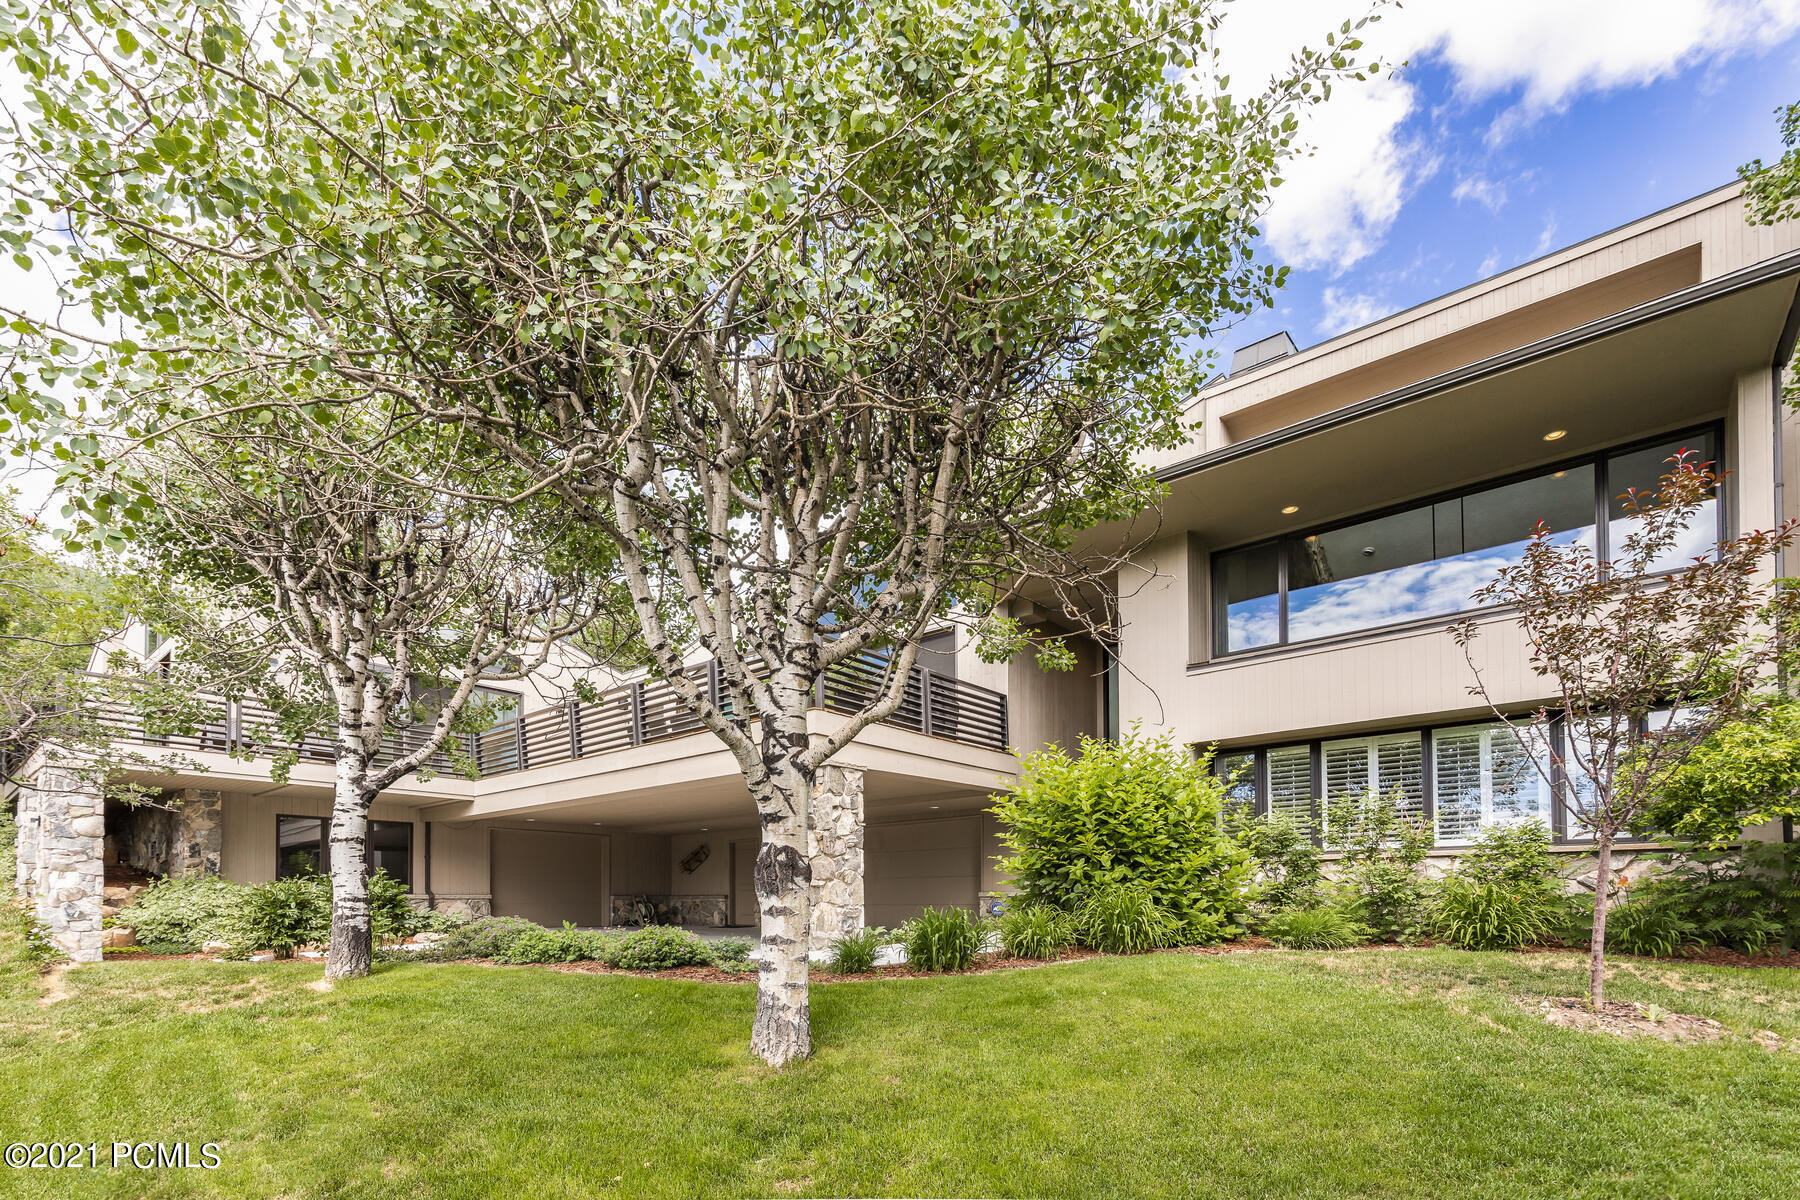 2425 Iron Canyon Drive, Park City, Utah 84060, 5 Bedrooms Bedrooms, ,6 BathroomsBathrooms,Single Family,For Sale,Iron Canyon,12101420